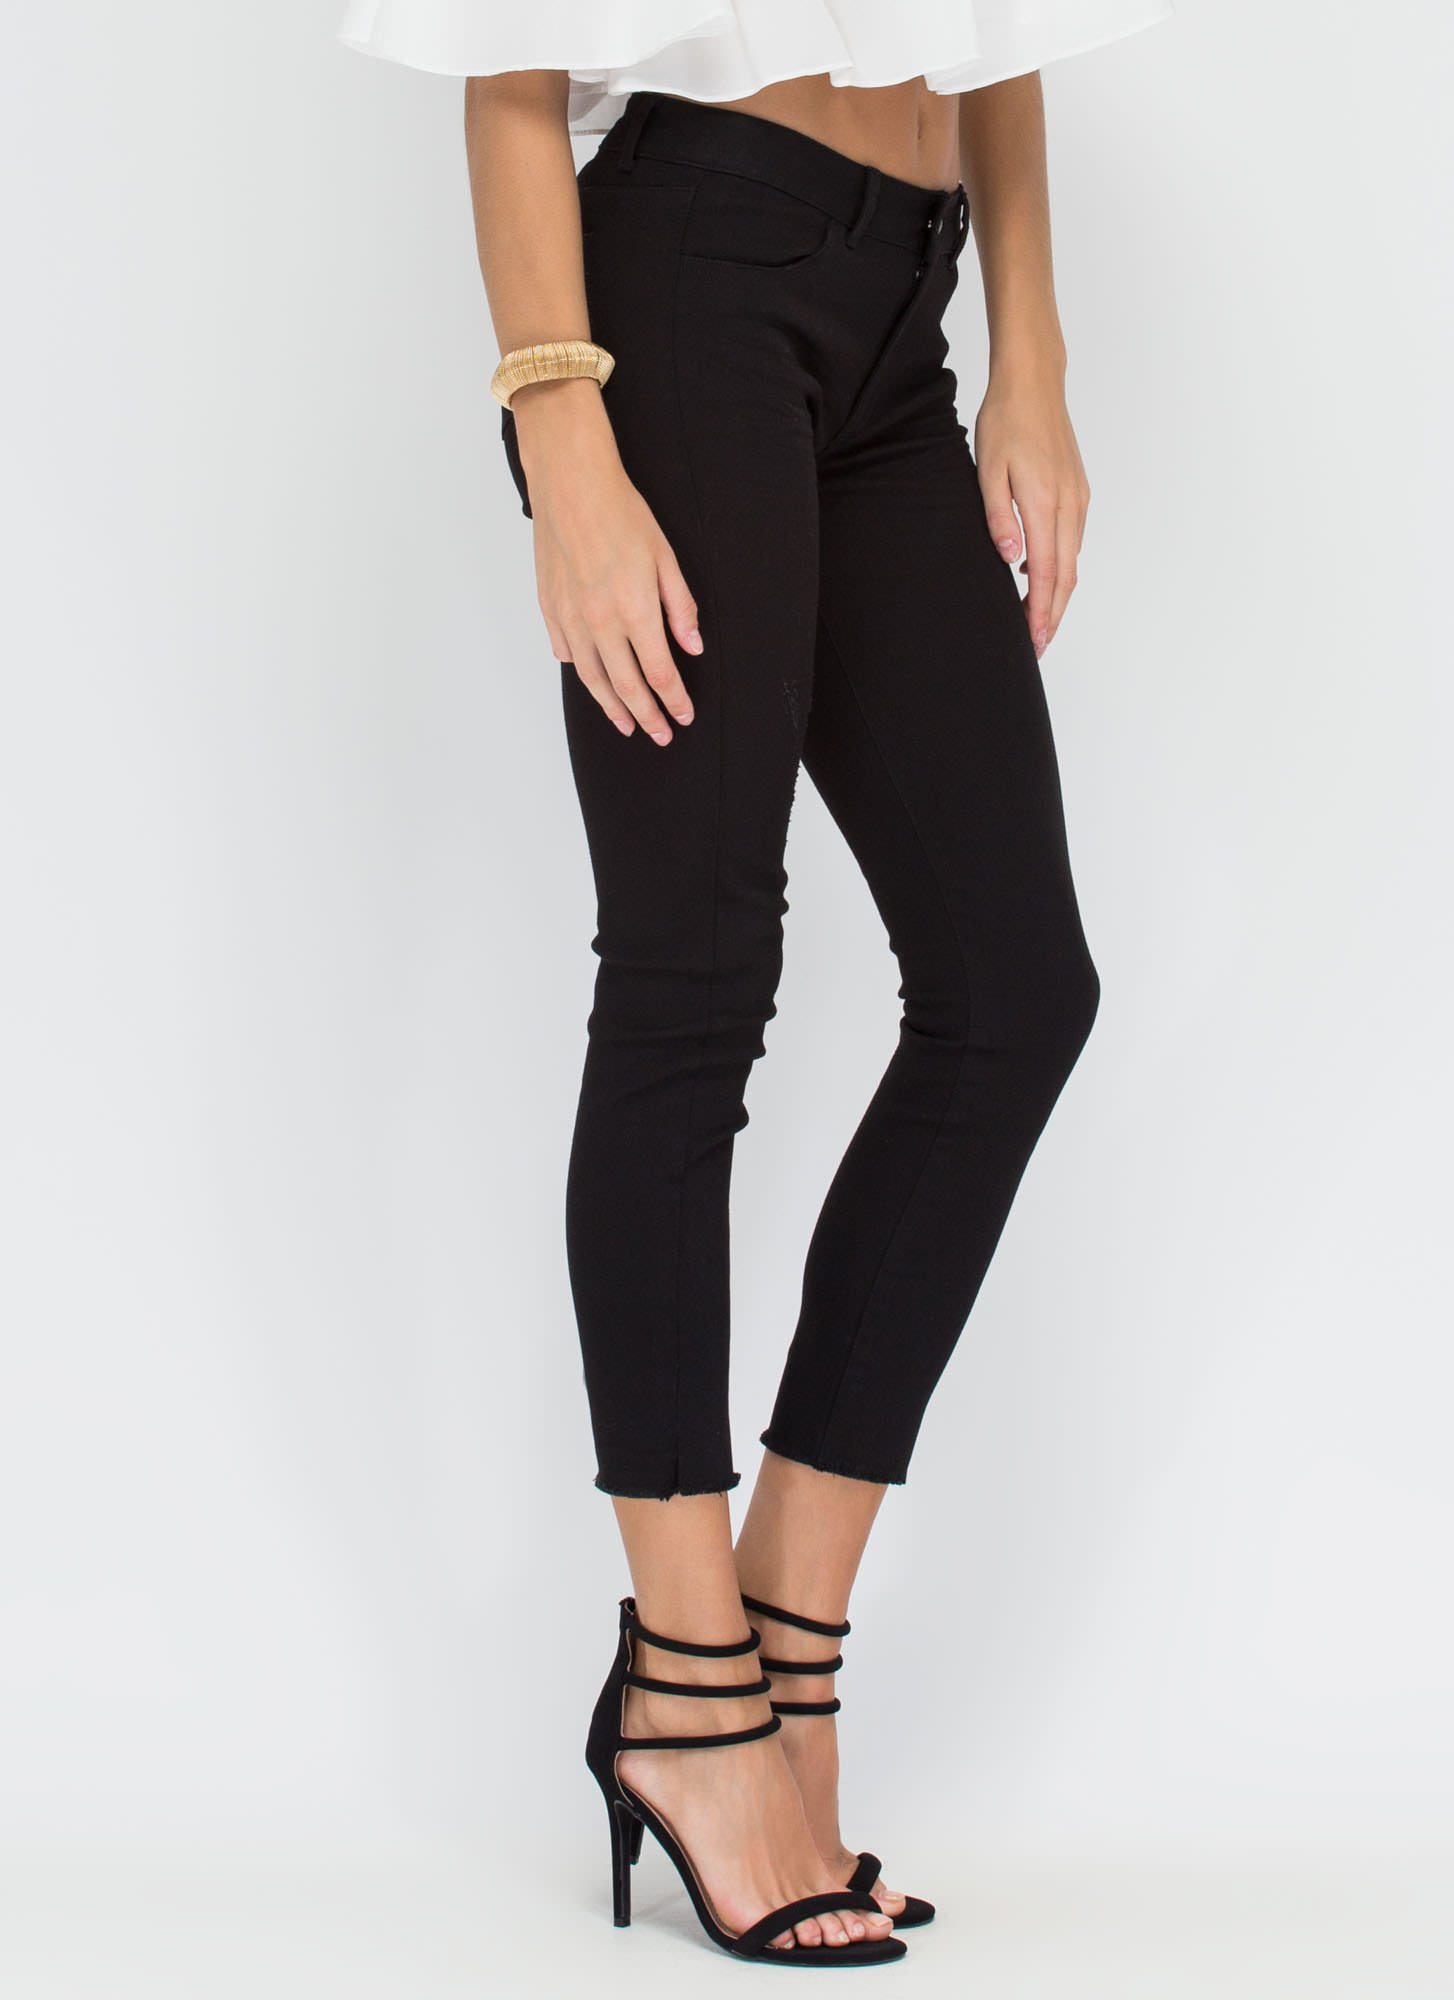 Make The Cut-Off Fringed Skinny Jeans BLACK